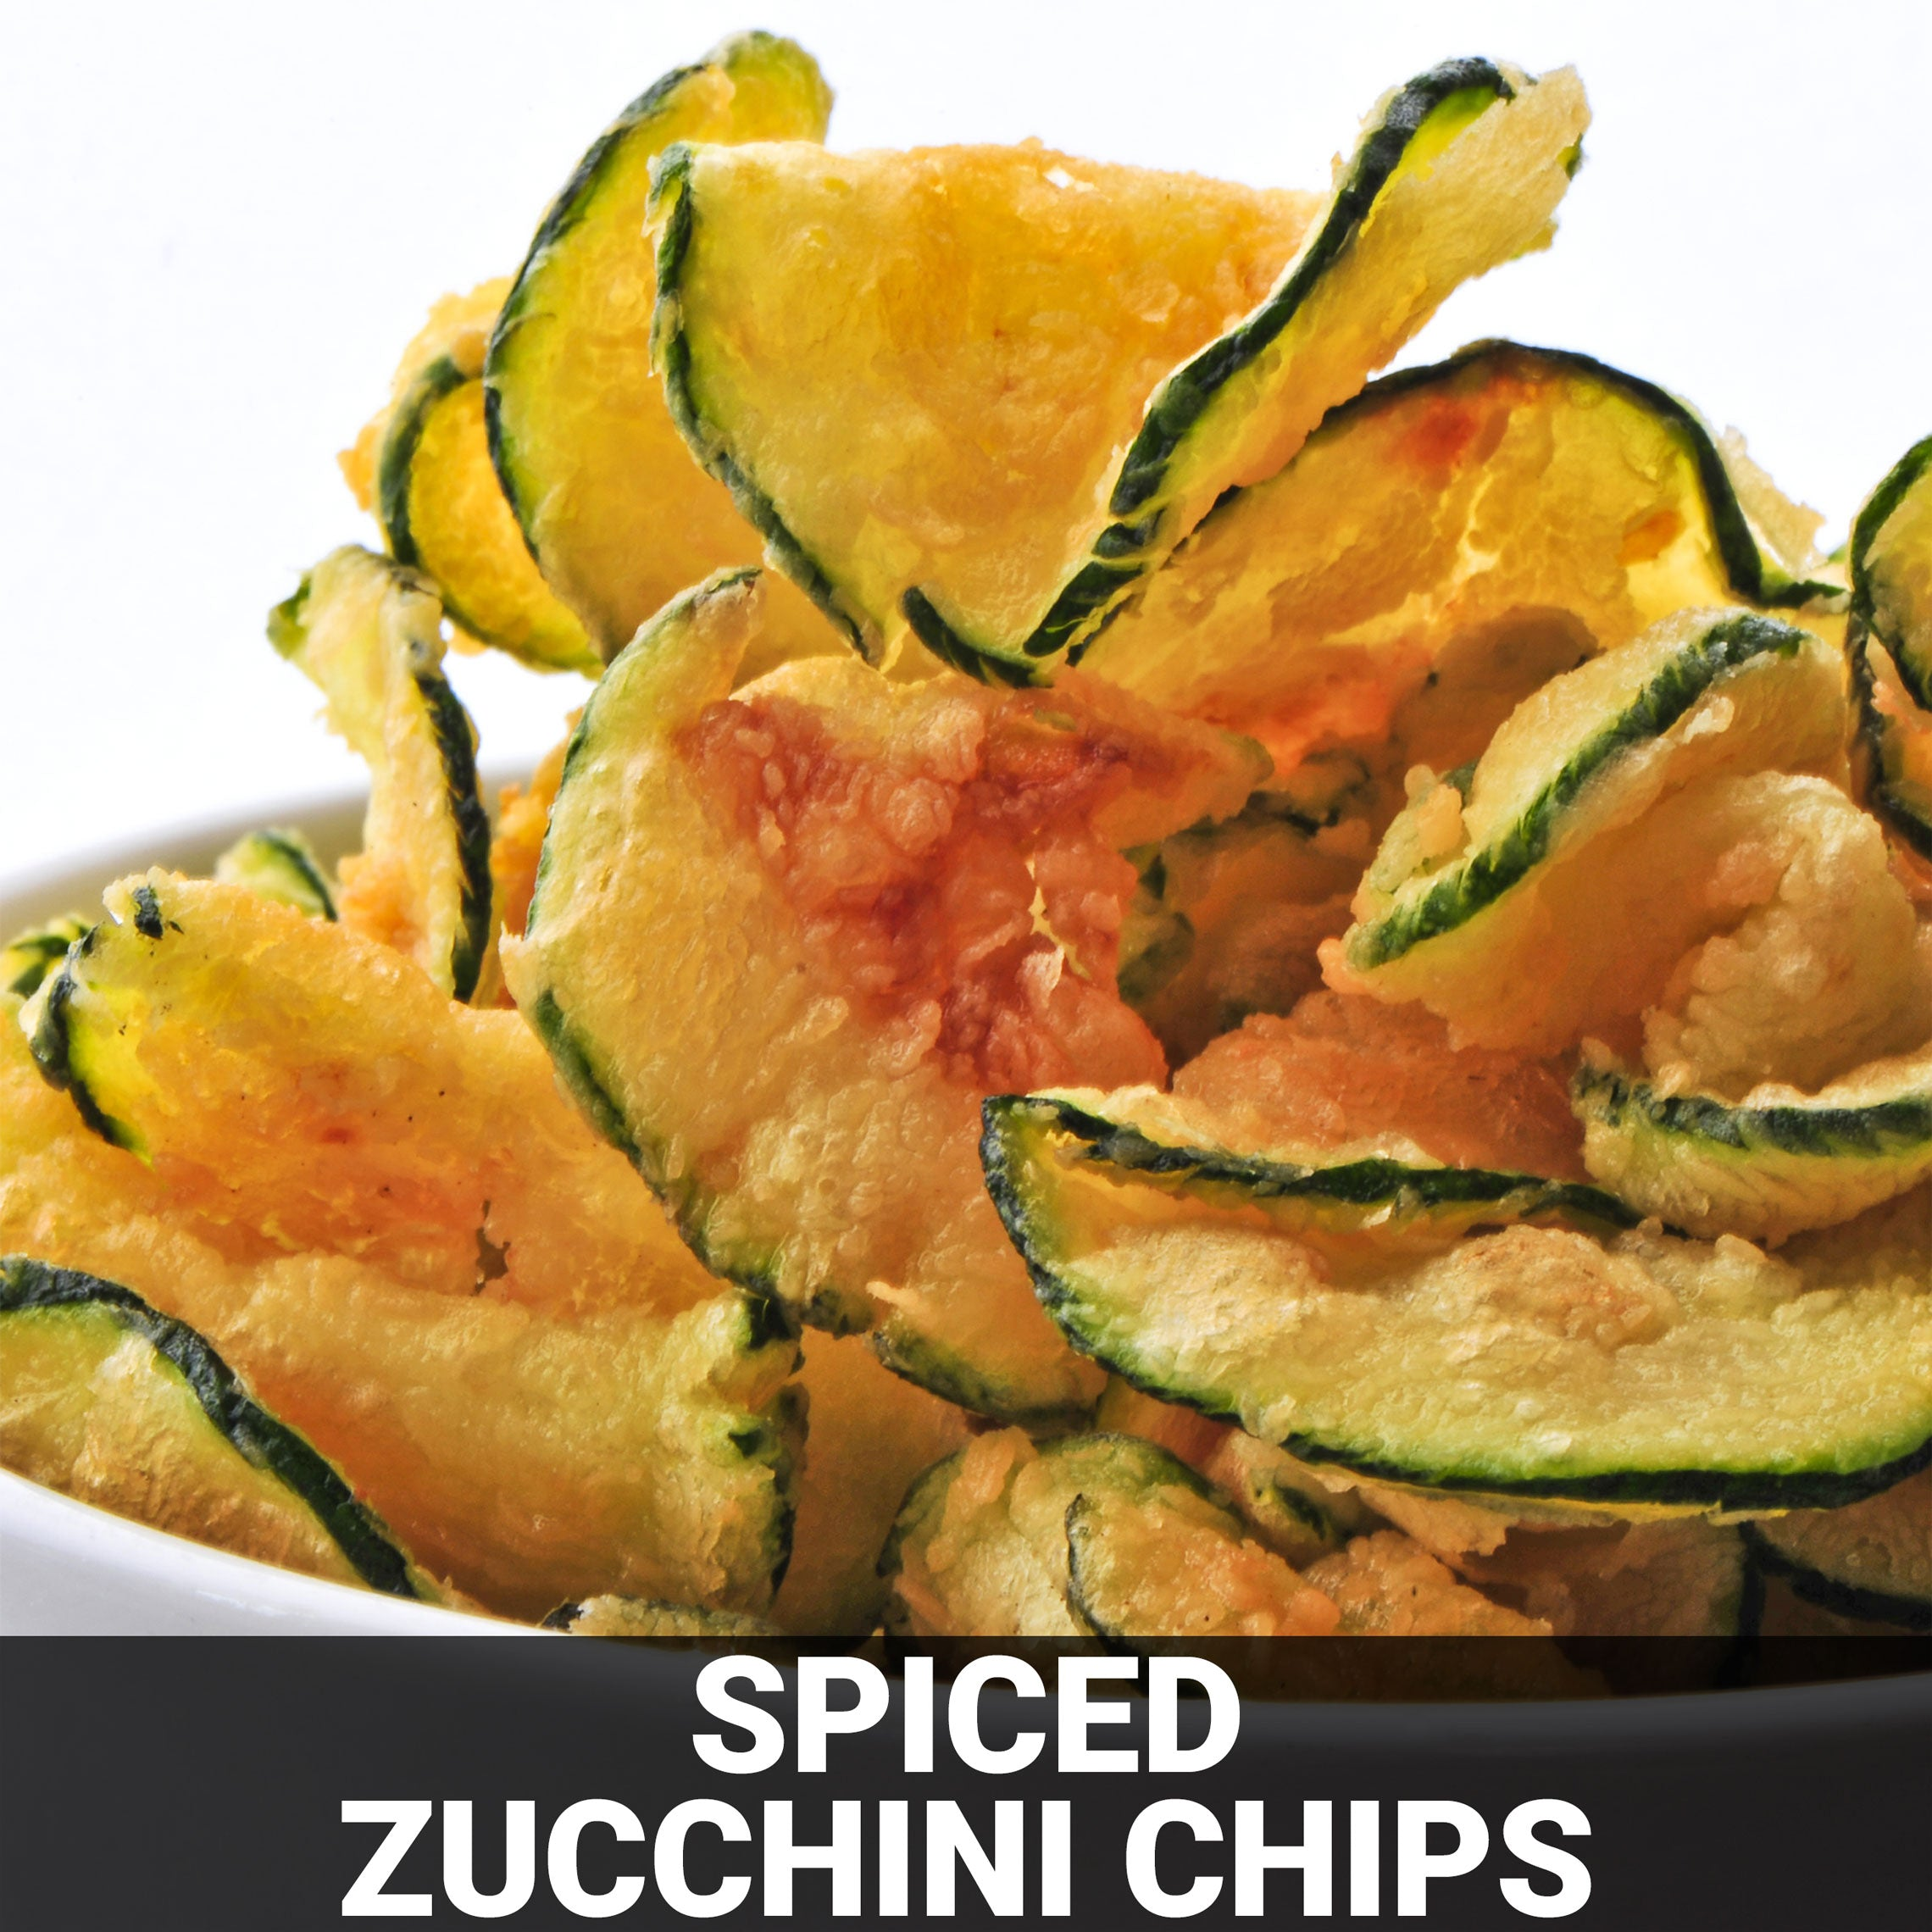 Spiced Zucchini Chips Recipe - Foods Alive